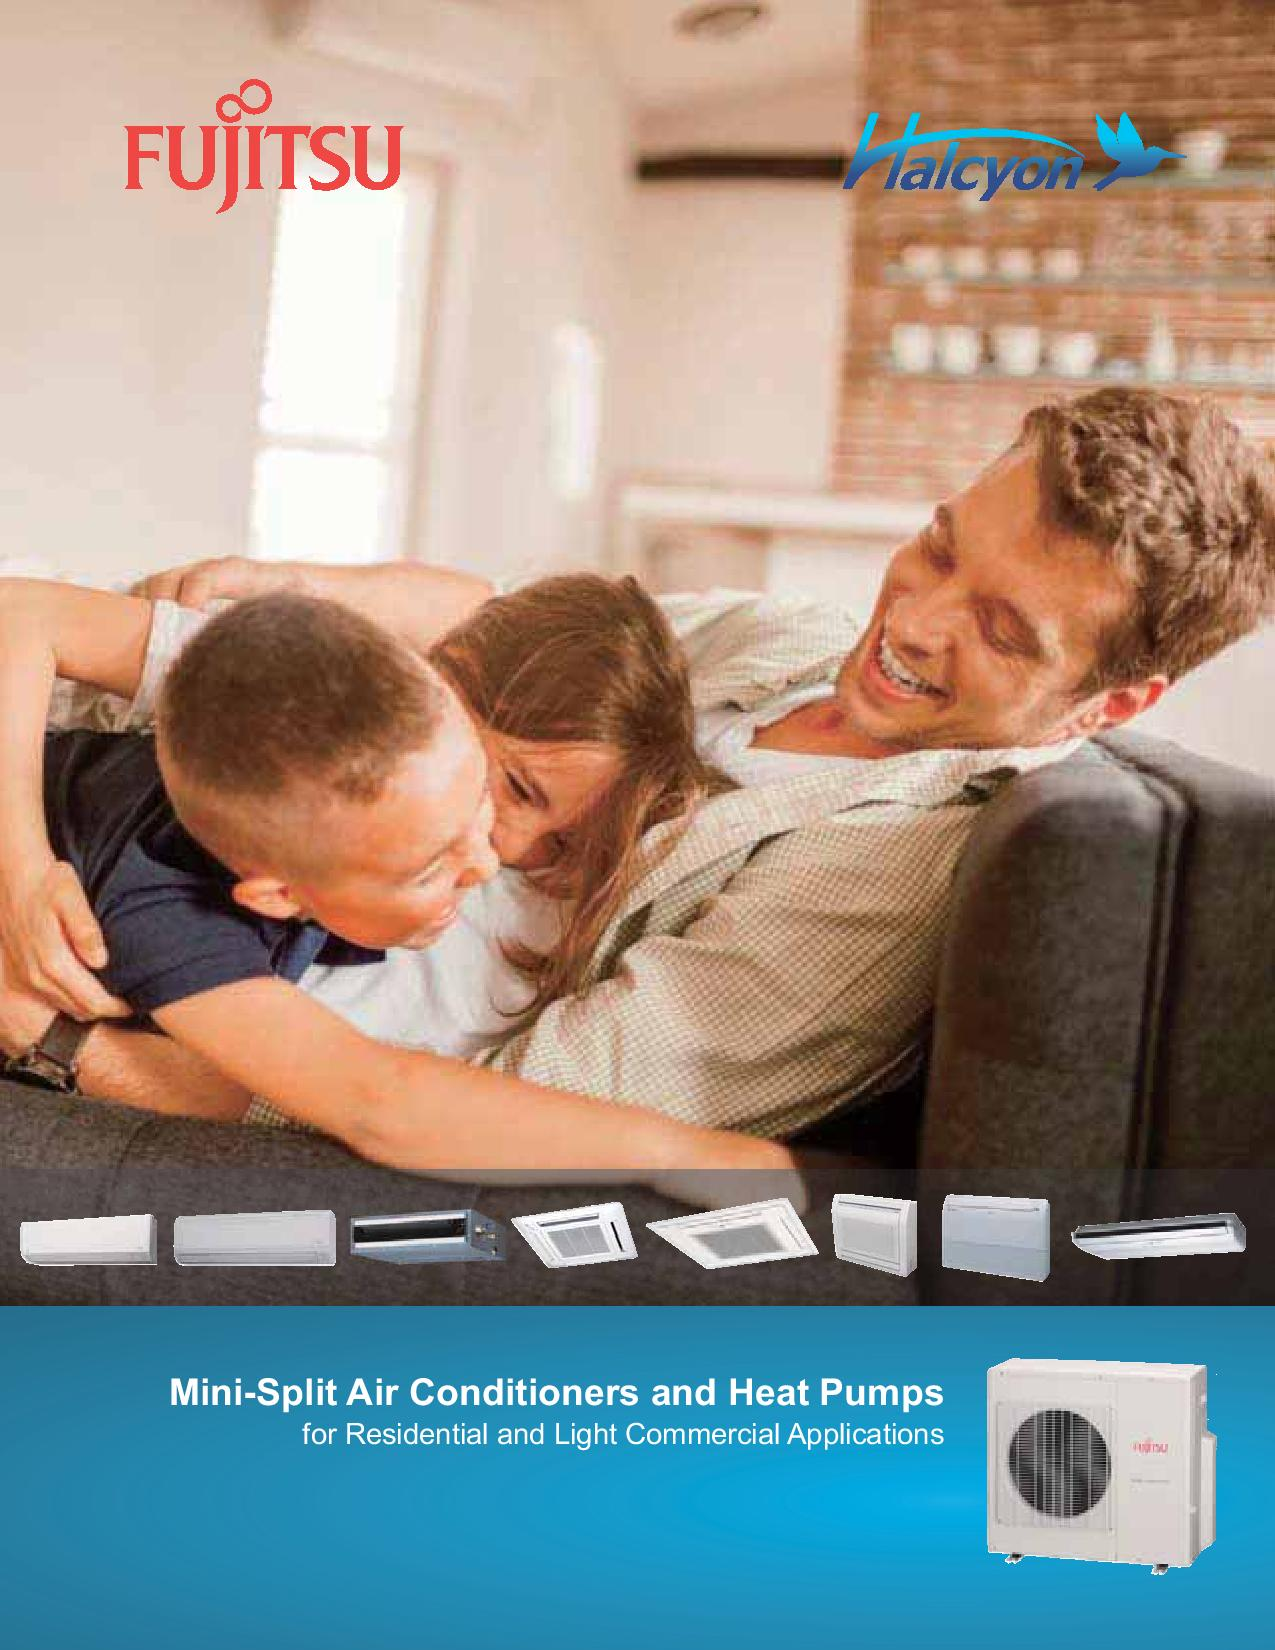 See what makes (Mftr.) Fujitsu your number one choice for Air Conditioner repair in Lake Mary FL.